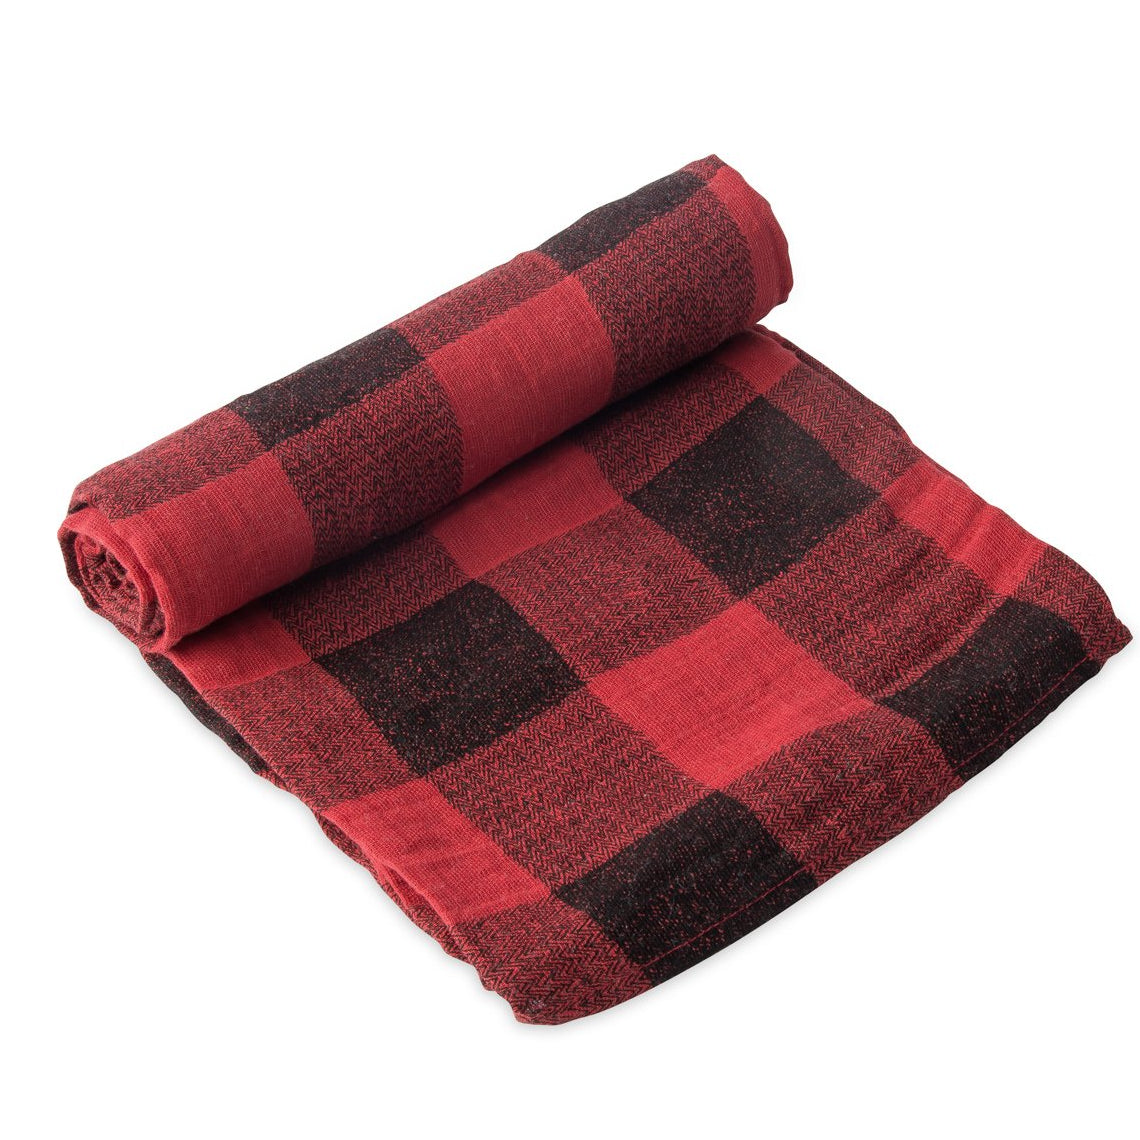 Red Plaid swaddle blanket by Little Unicorn at Bonjour Baby Baskets